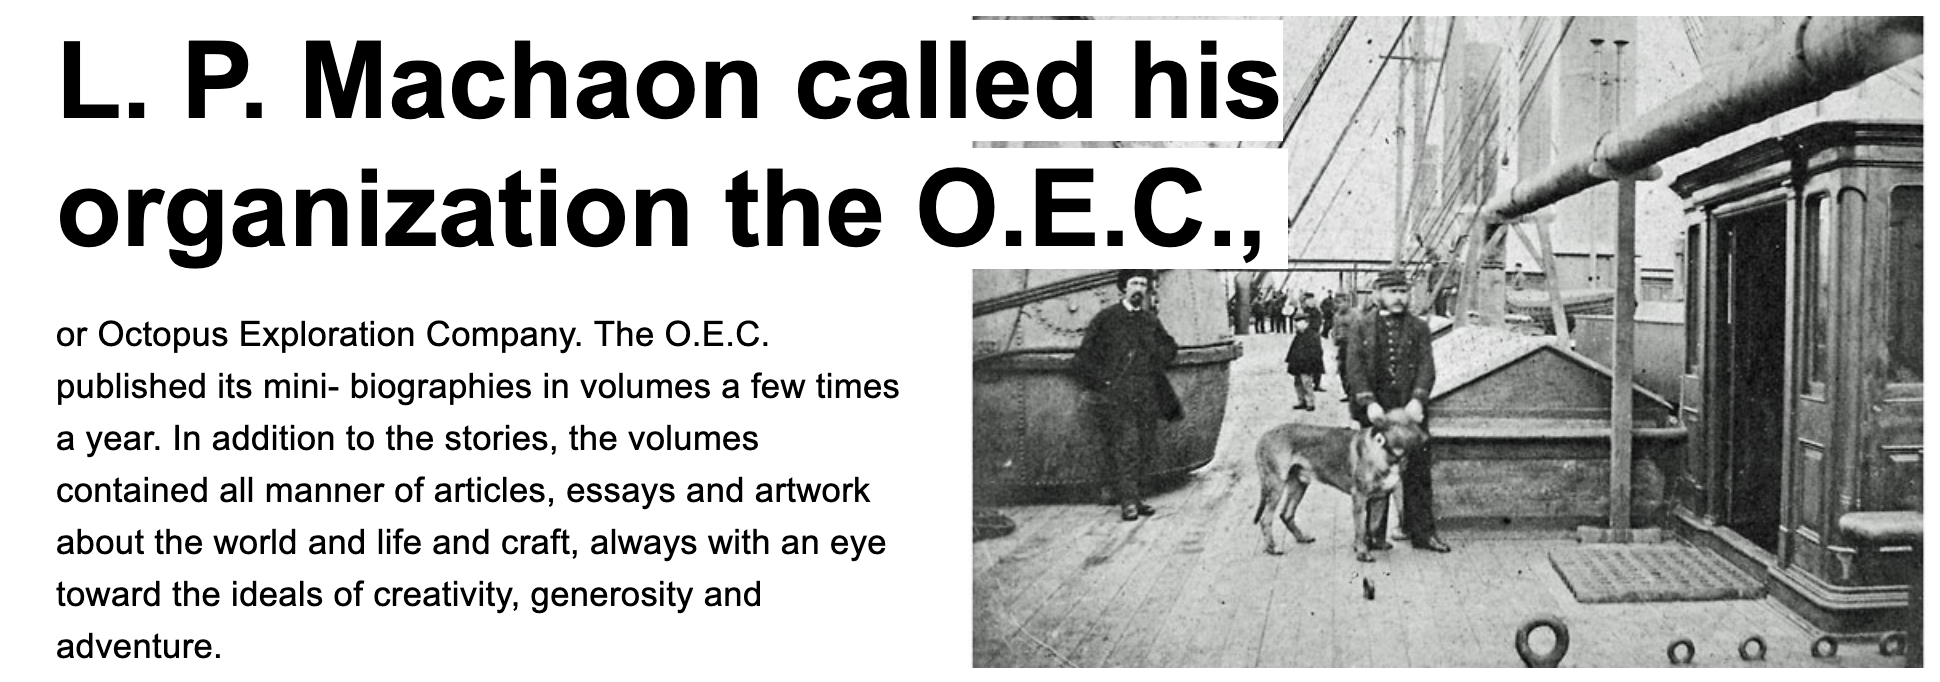 L. P. Machaon called his organization the O.E.C., or Octopus Exploration Company. The O.E.C. published its mini- biographies in volumes a few times a year. In addition to the stories, the volumes contained all manner of articles, essays and artwork about the world and life and craft, always with an eye toward the ideals of creativity, generosity and adventure.